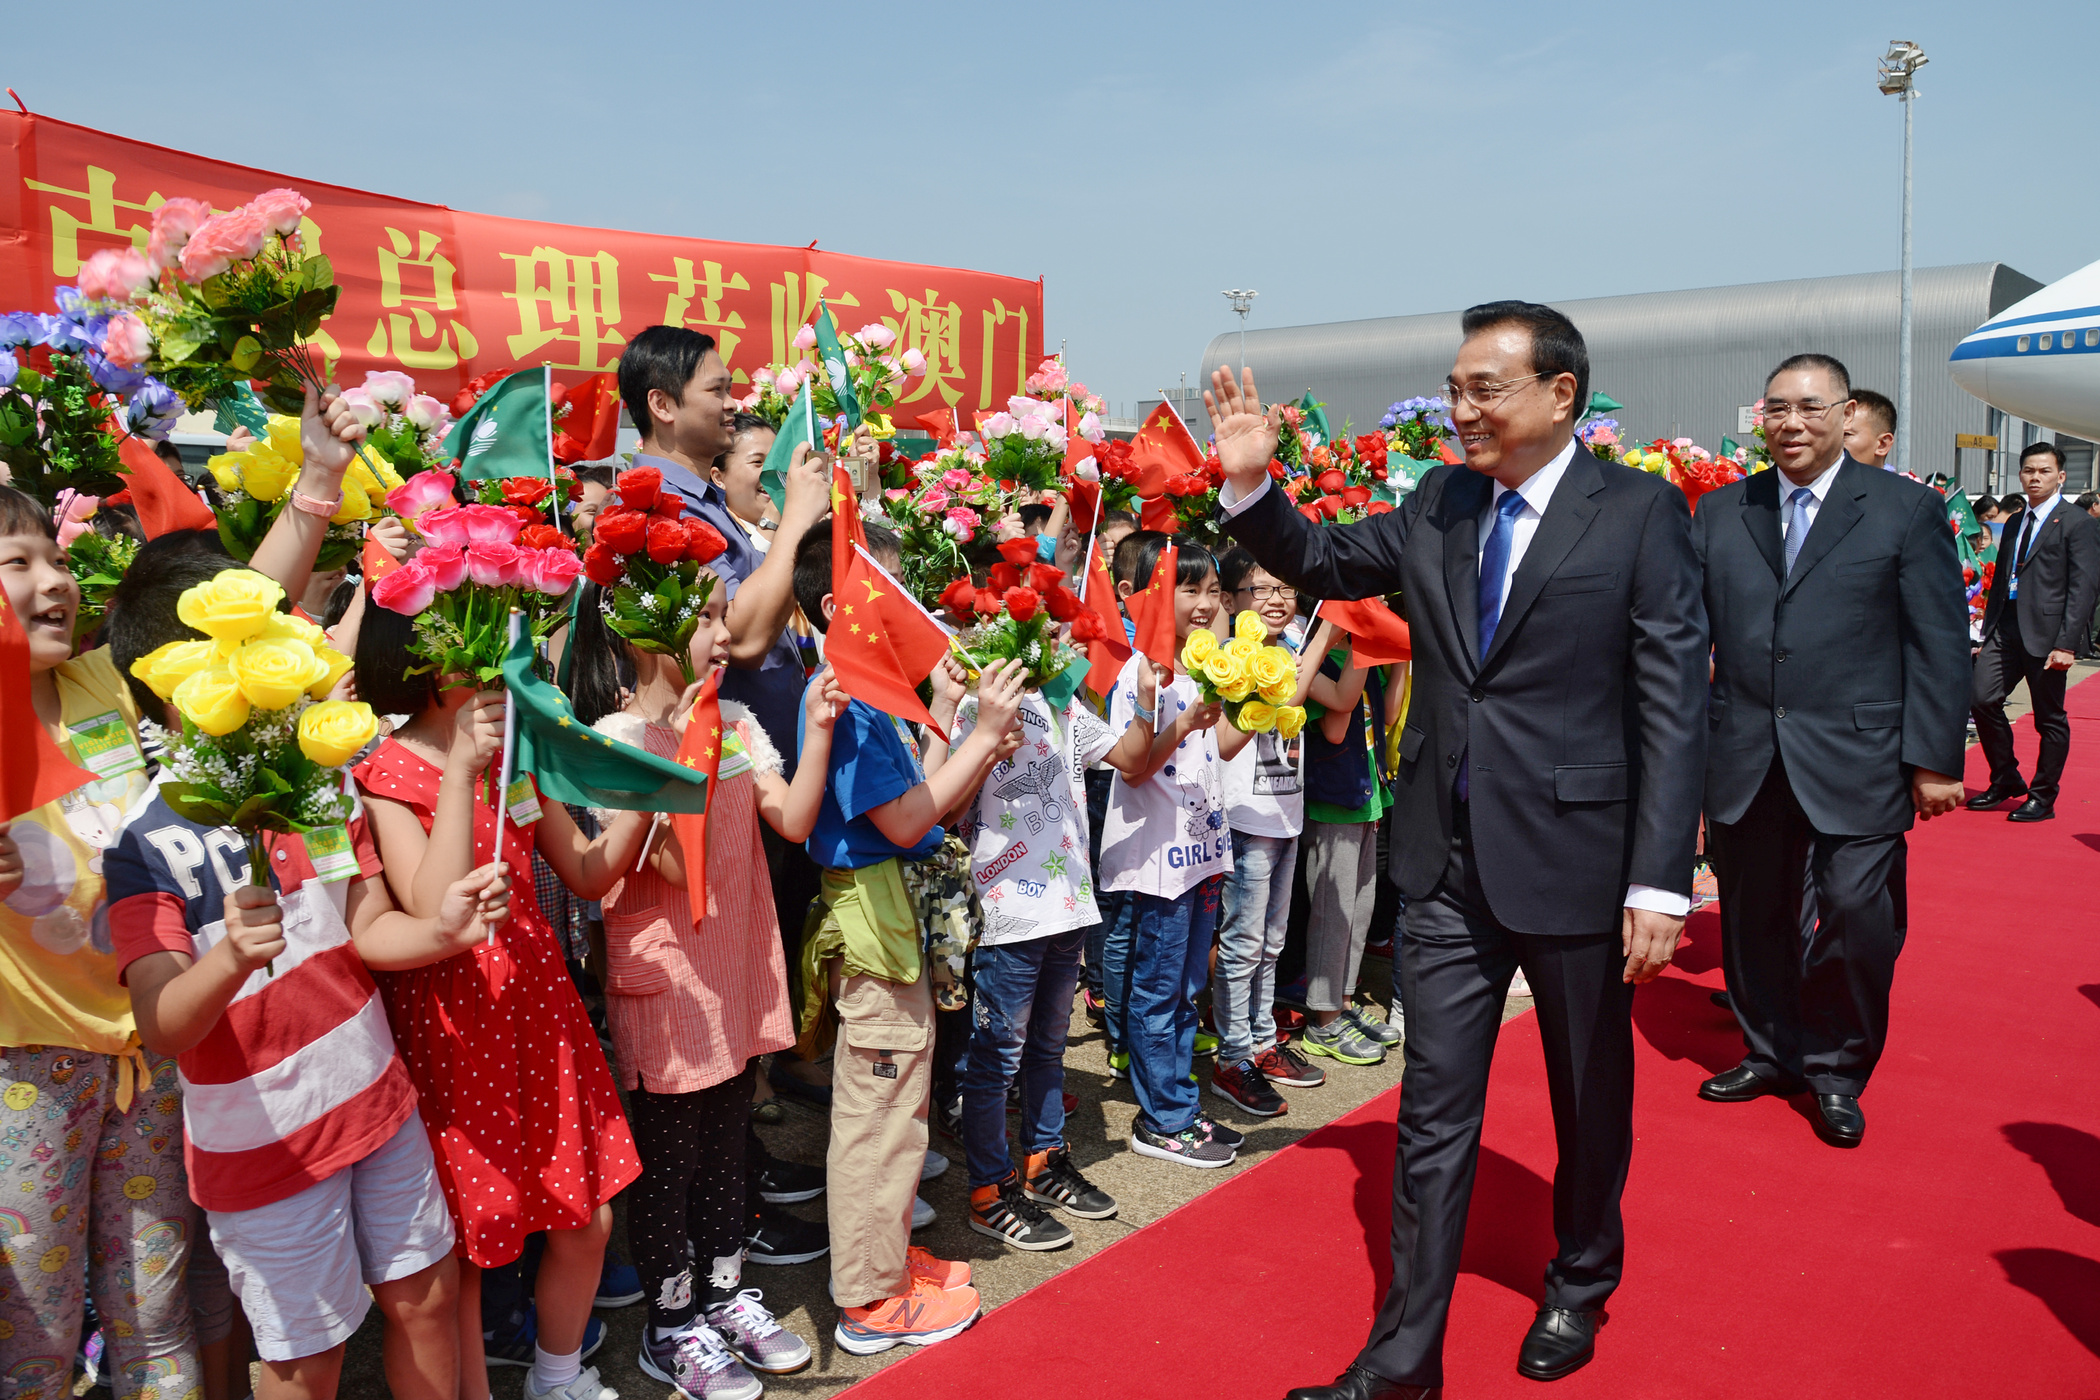 Chinese premier arrives in Macau to attend the Ministerial conference